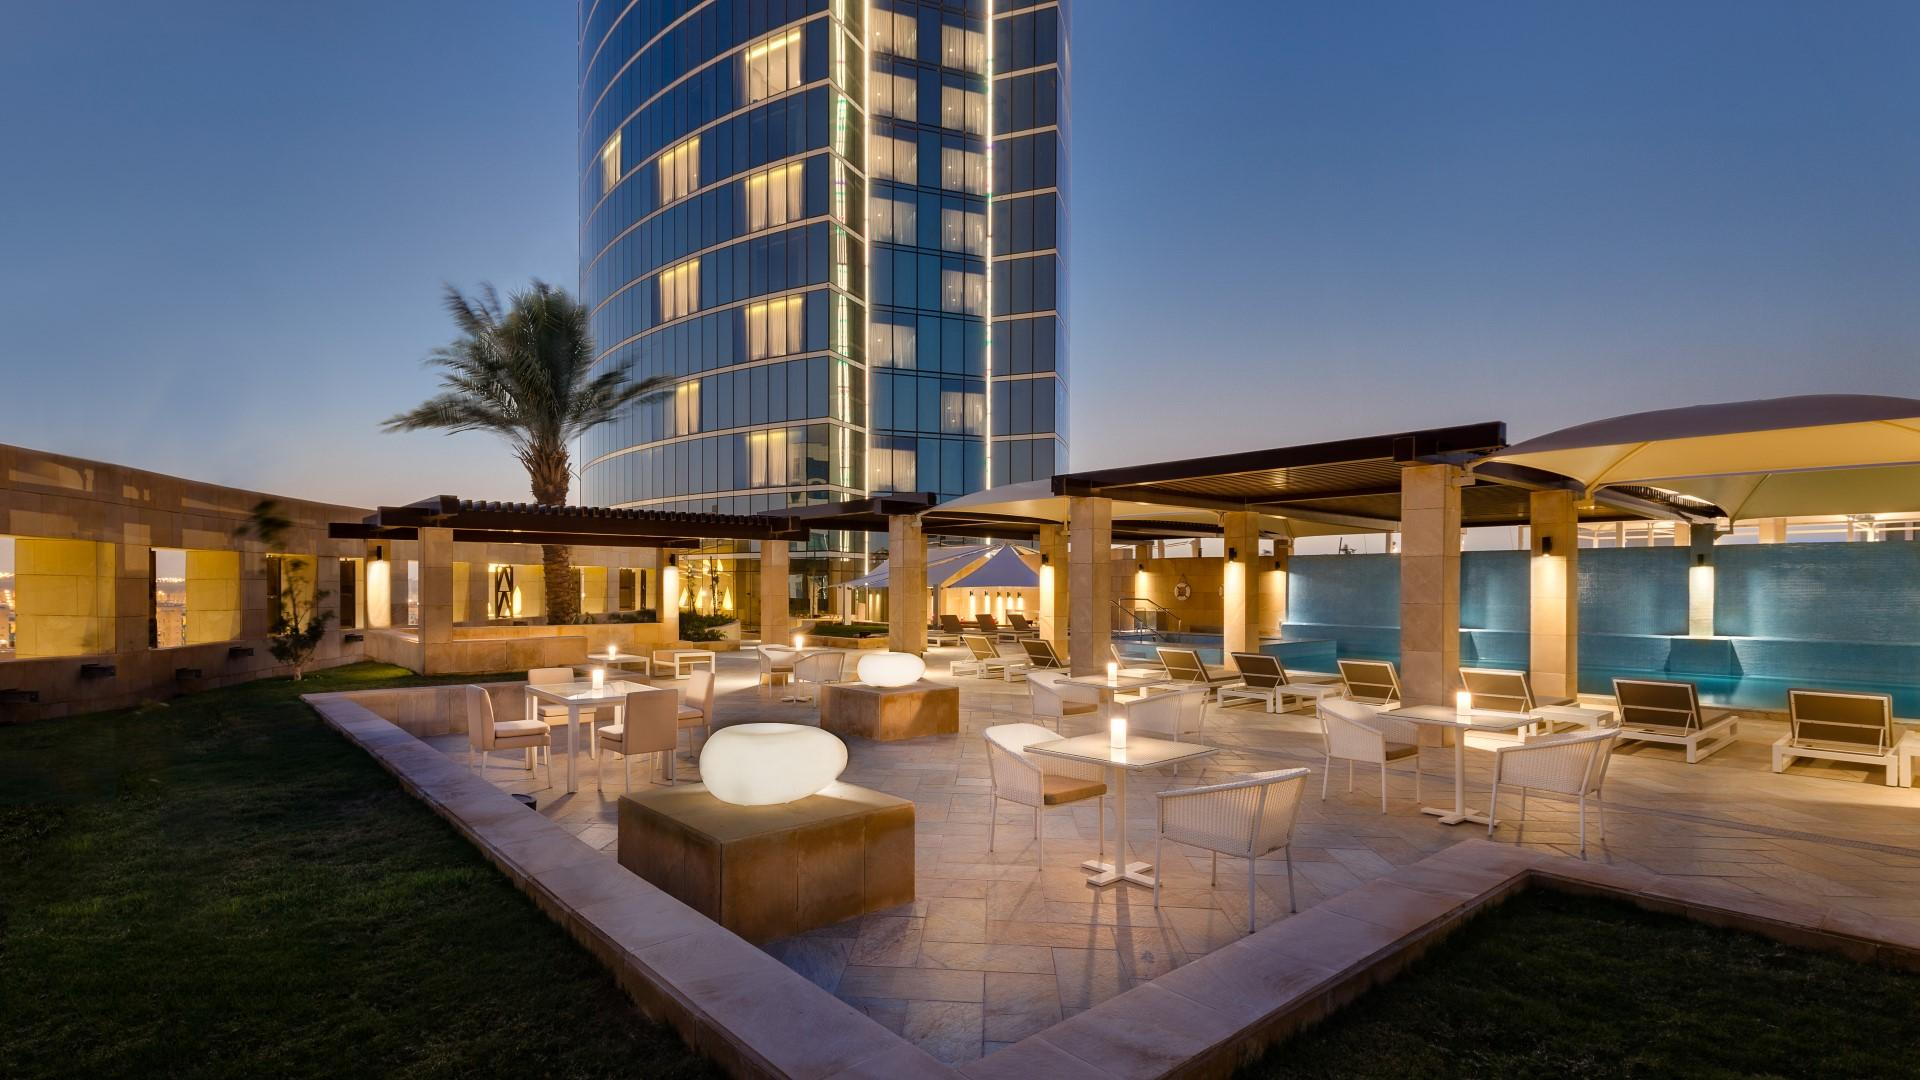 Image for Cheap Hotels in Saudi Arabia | Online Hotel Booking | Syahy.com